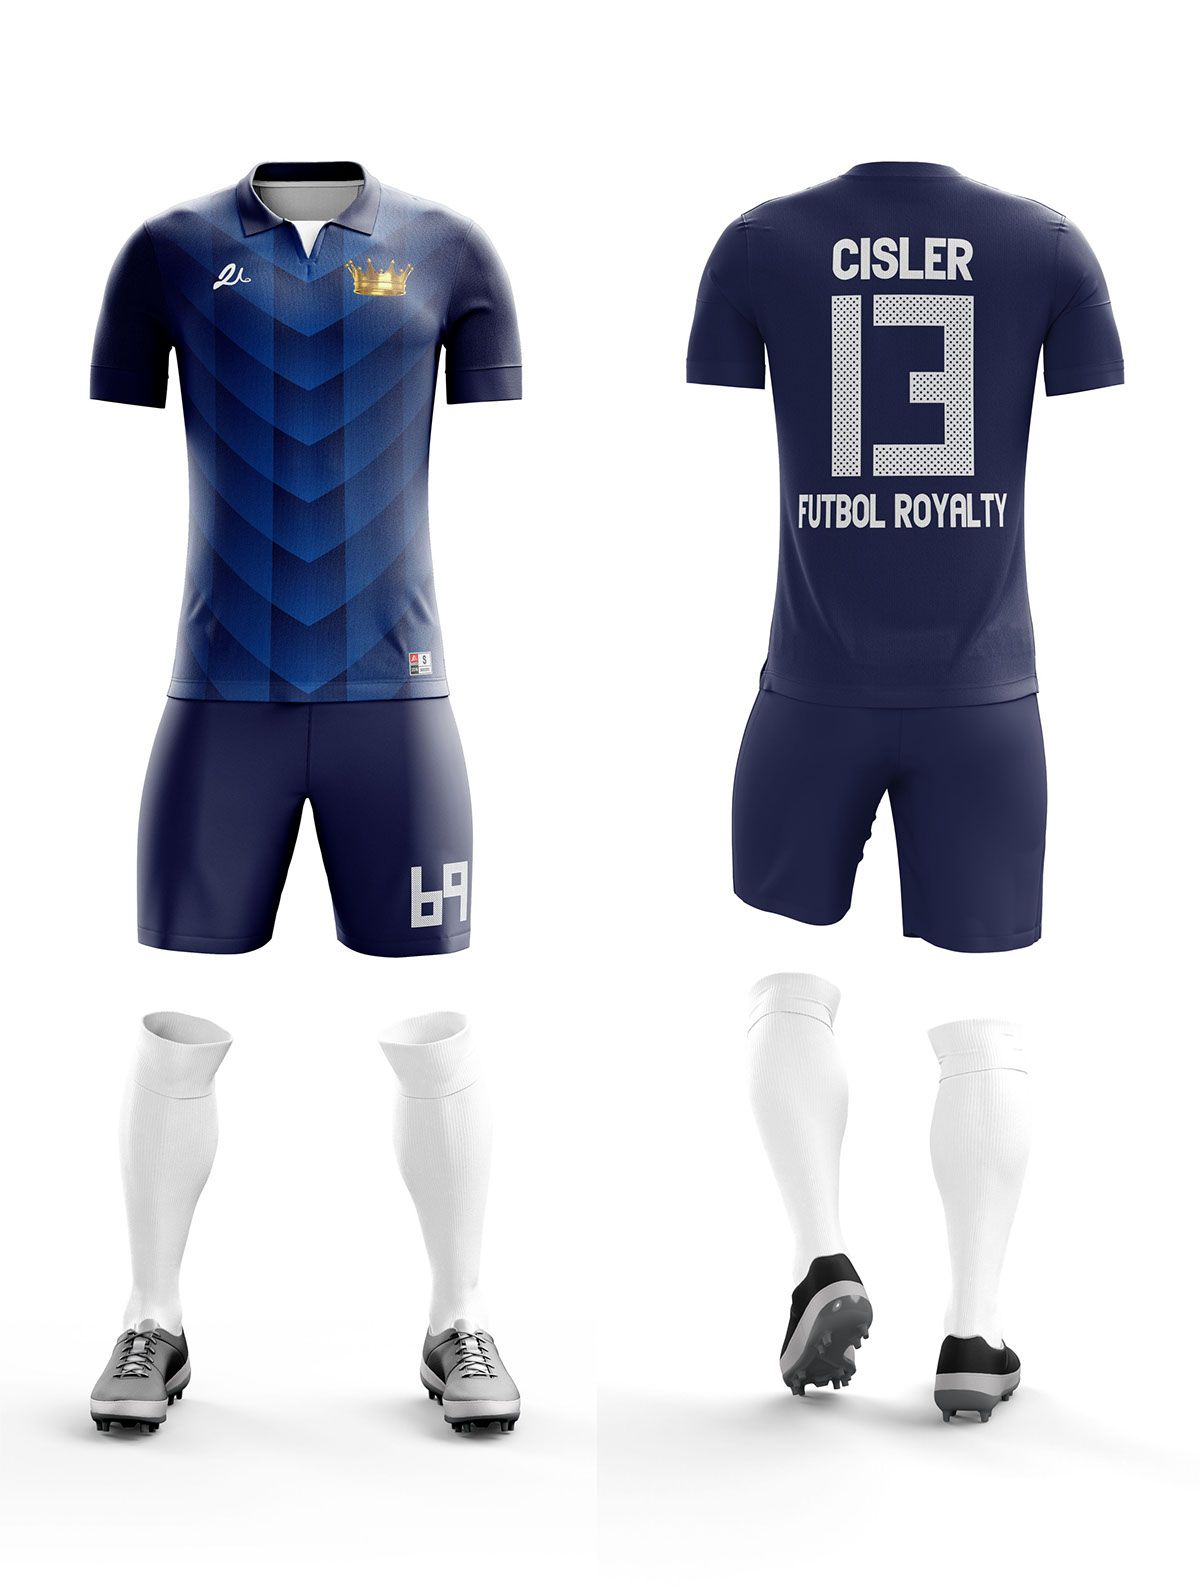 Download Mockup Jersey Football Cdr - Free Mockups | PSD Template ...